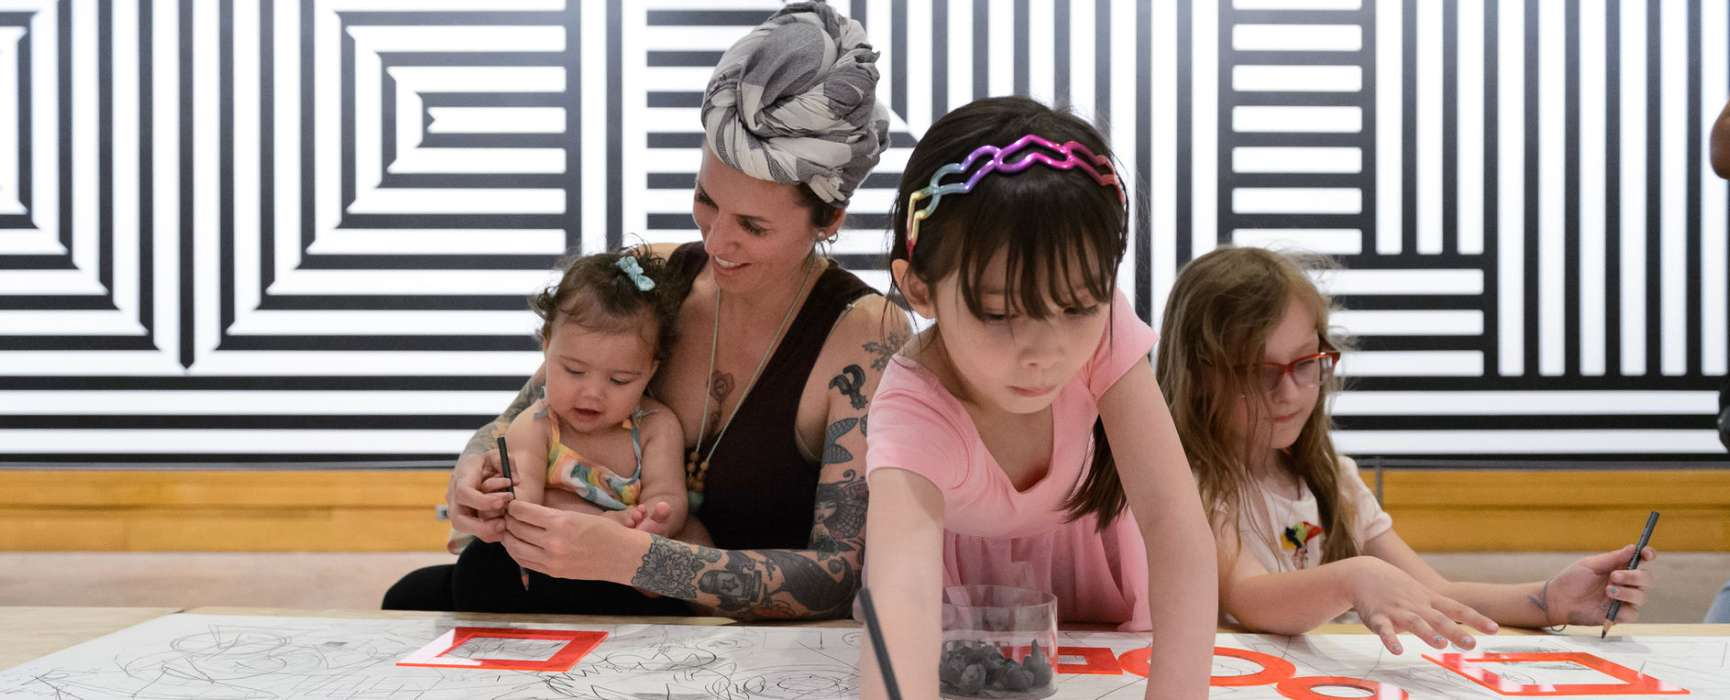 Image of a woman and three children work on an art project.